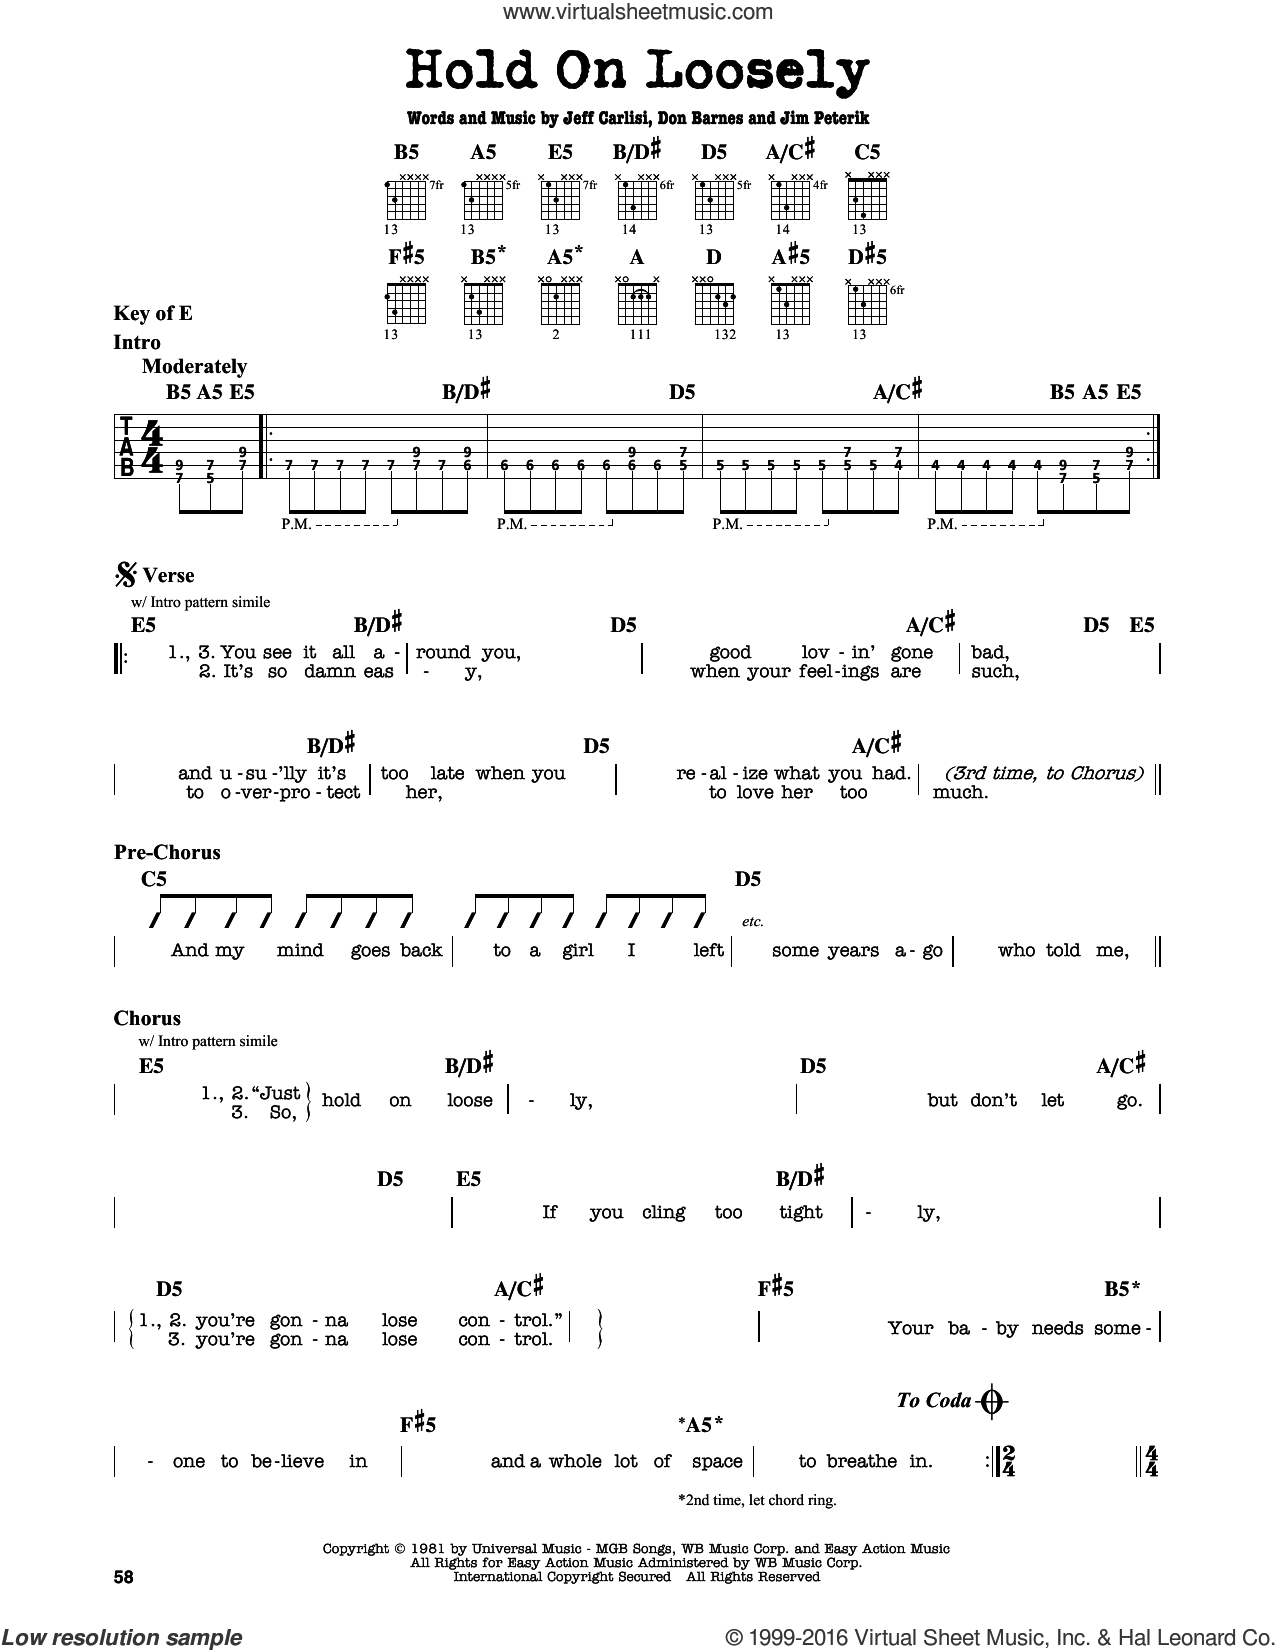 Hold On Loosely sheet music for guitar solo (lead sheet) by 38 Special, Don Barnes, Jeff Carlisi and Jim Peterik, intermediate guitar (lead sheet)